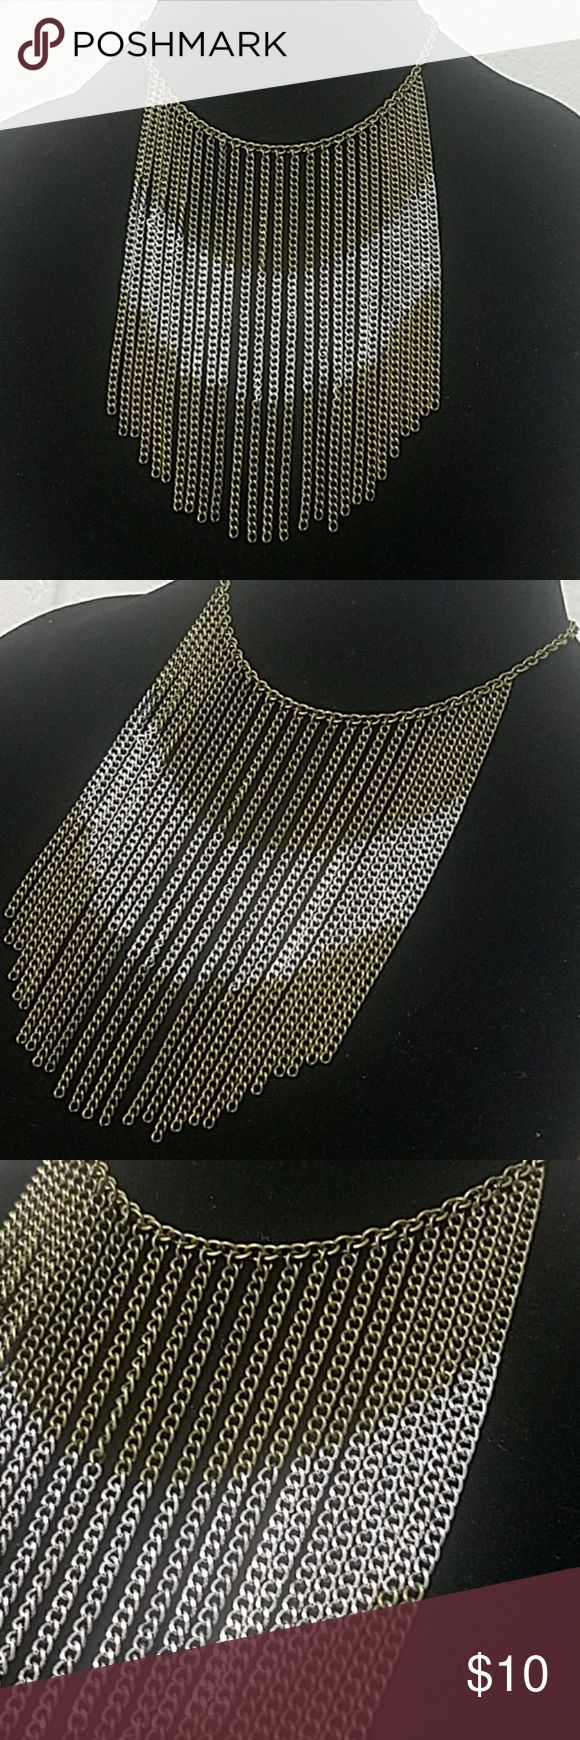 """Antiqued Brass Chevron Chain Collar 14"""" Antiqued brass chain w/lobster clasp closure.  26 (5"""") chains hang from along the necklace and have a chevron pattern in silver . Item#EN975 *ALL JEWELRY IS NWT/NWOT/UNUSED VINTAGE* 25% OFF BUNDLES OF 3 OR MORE ITEMS! ALL REASONABLE OFFERS ACCEPTED! BUY WITH CONFIDENCE TOP 10% SELLER  FAST SHIPPING, 5 STAR RATING, FREE GIFT w/MOST ORDERS! Jesi's Fashionz  Jewelry Necklaces"""